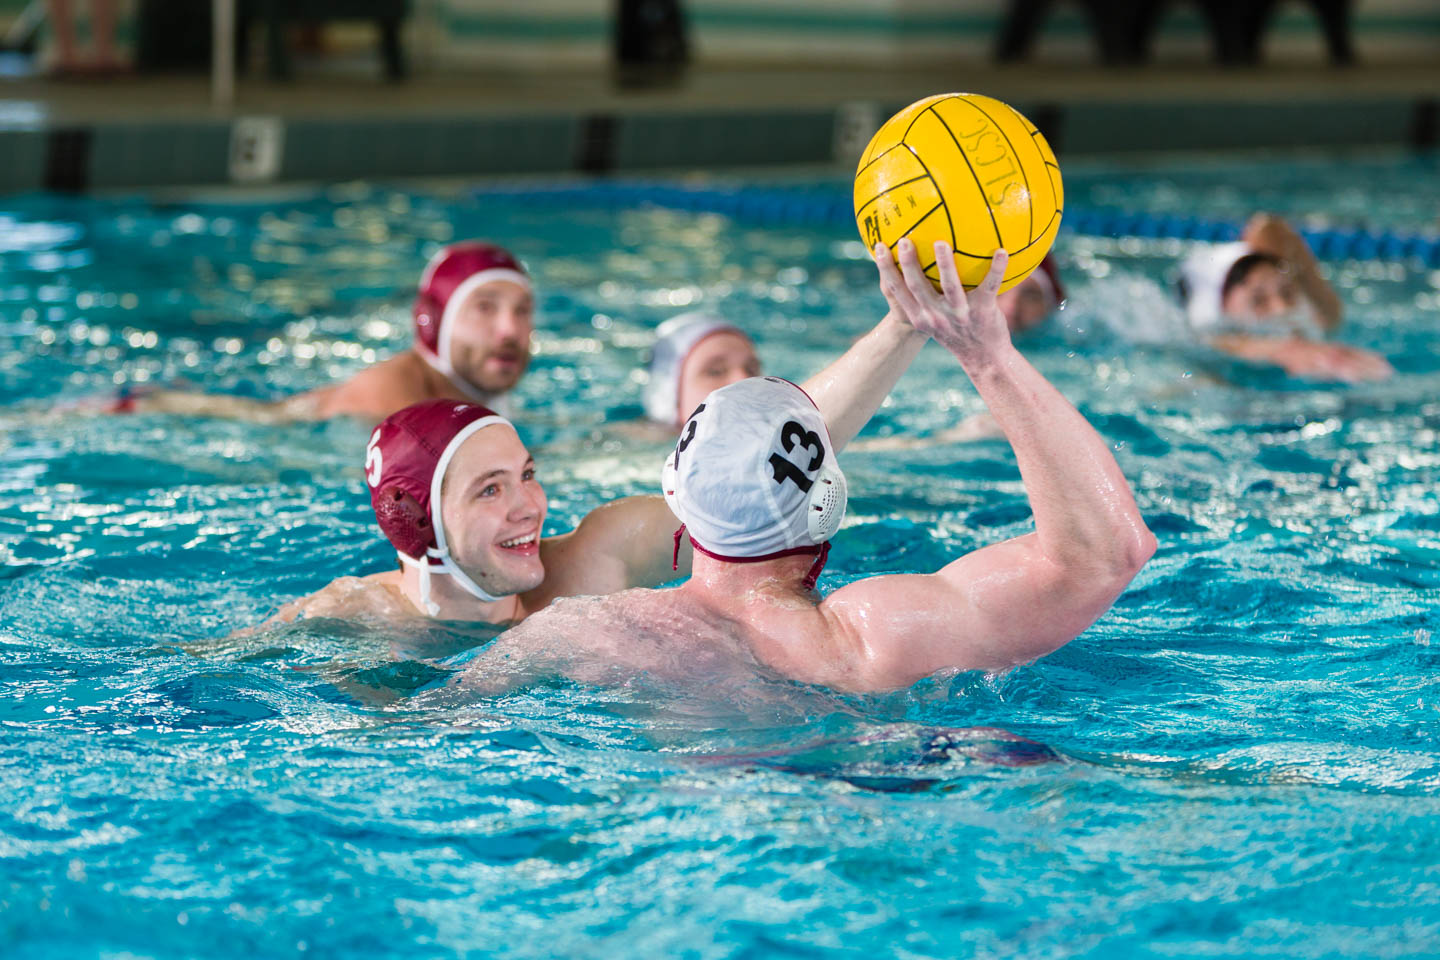 Offense and defense in water polo